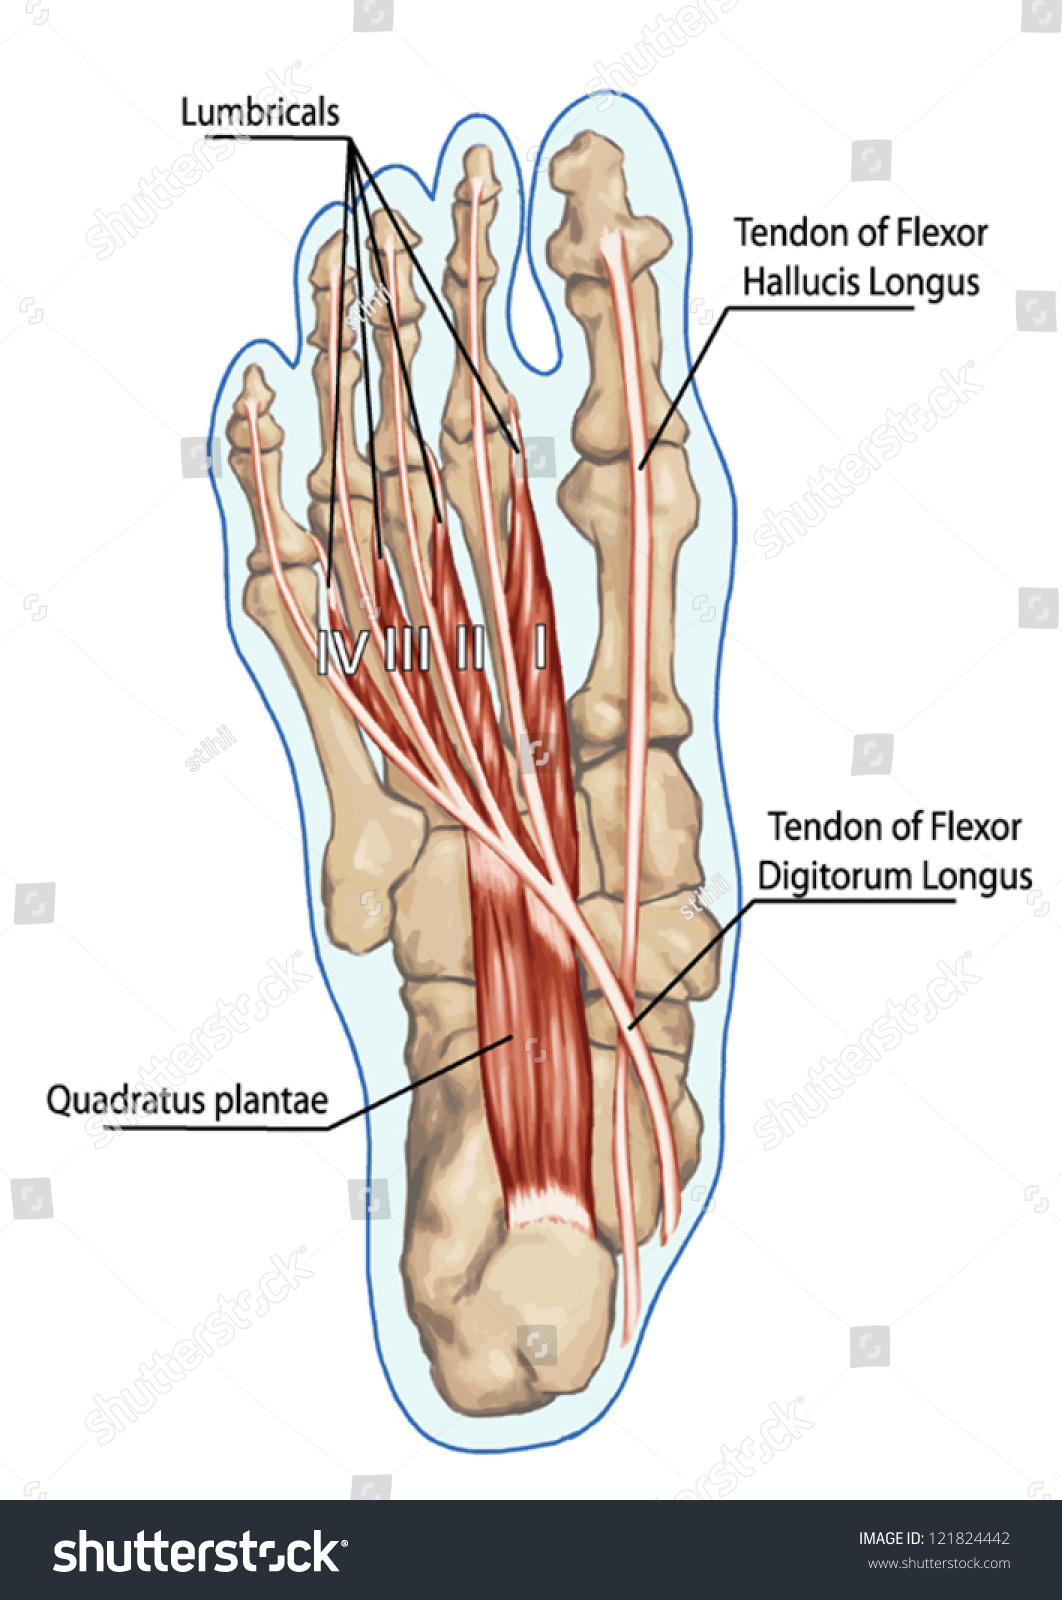 Lubricals Anatomy Leg Foot Human Muscular Stock Vector Royalty Free